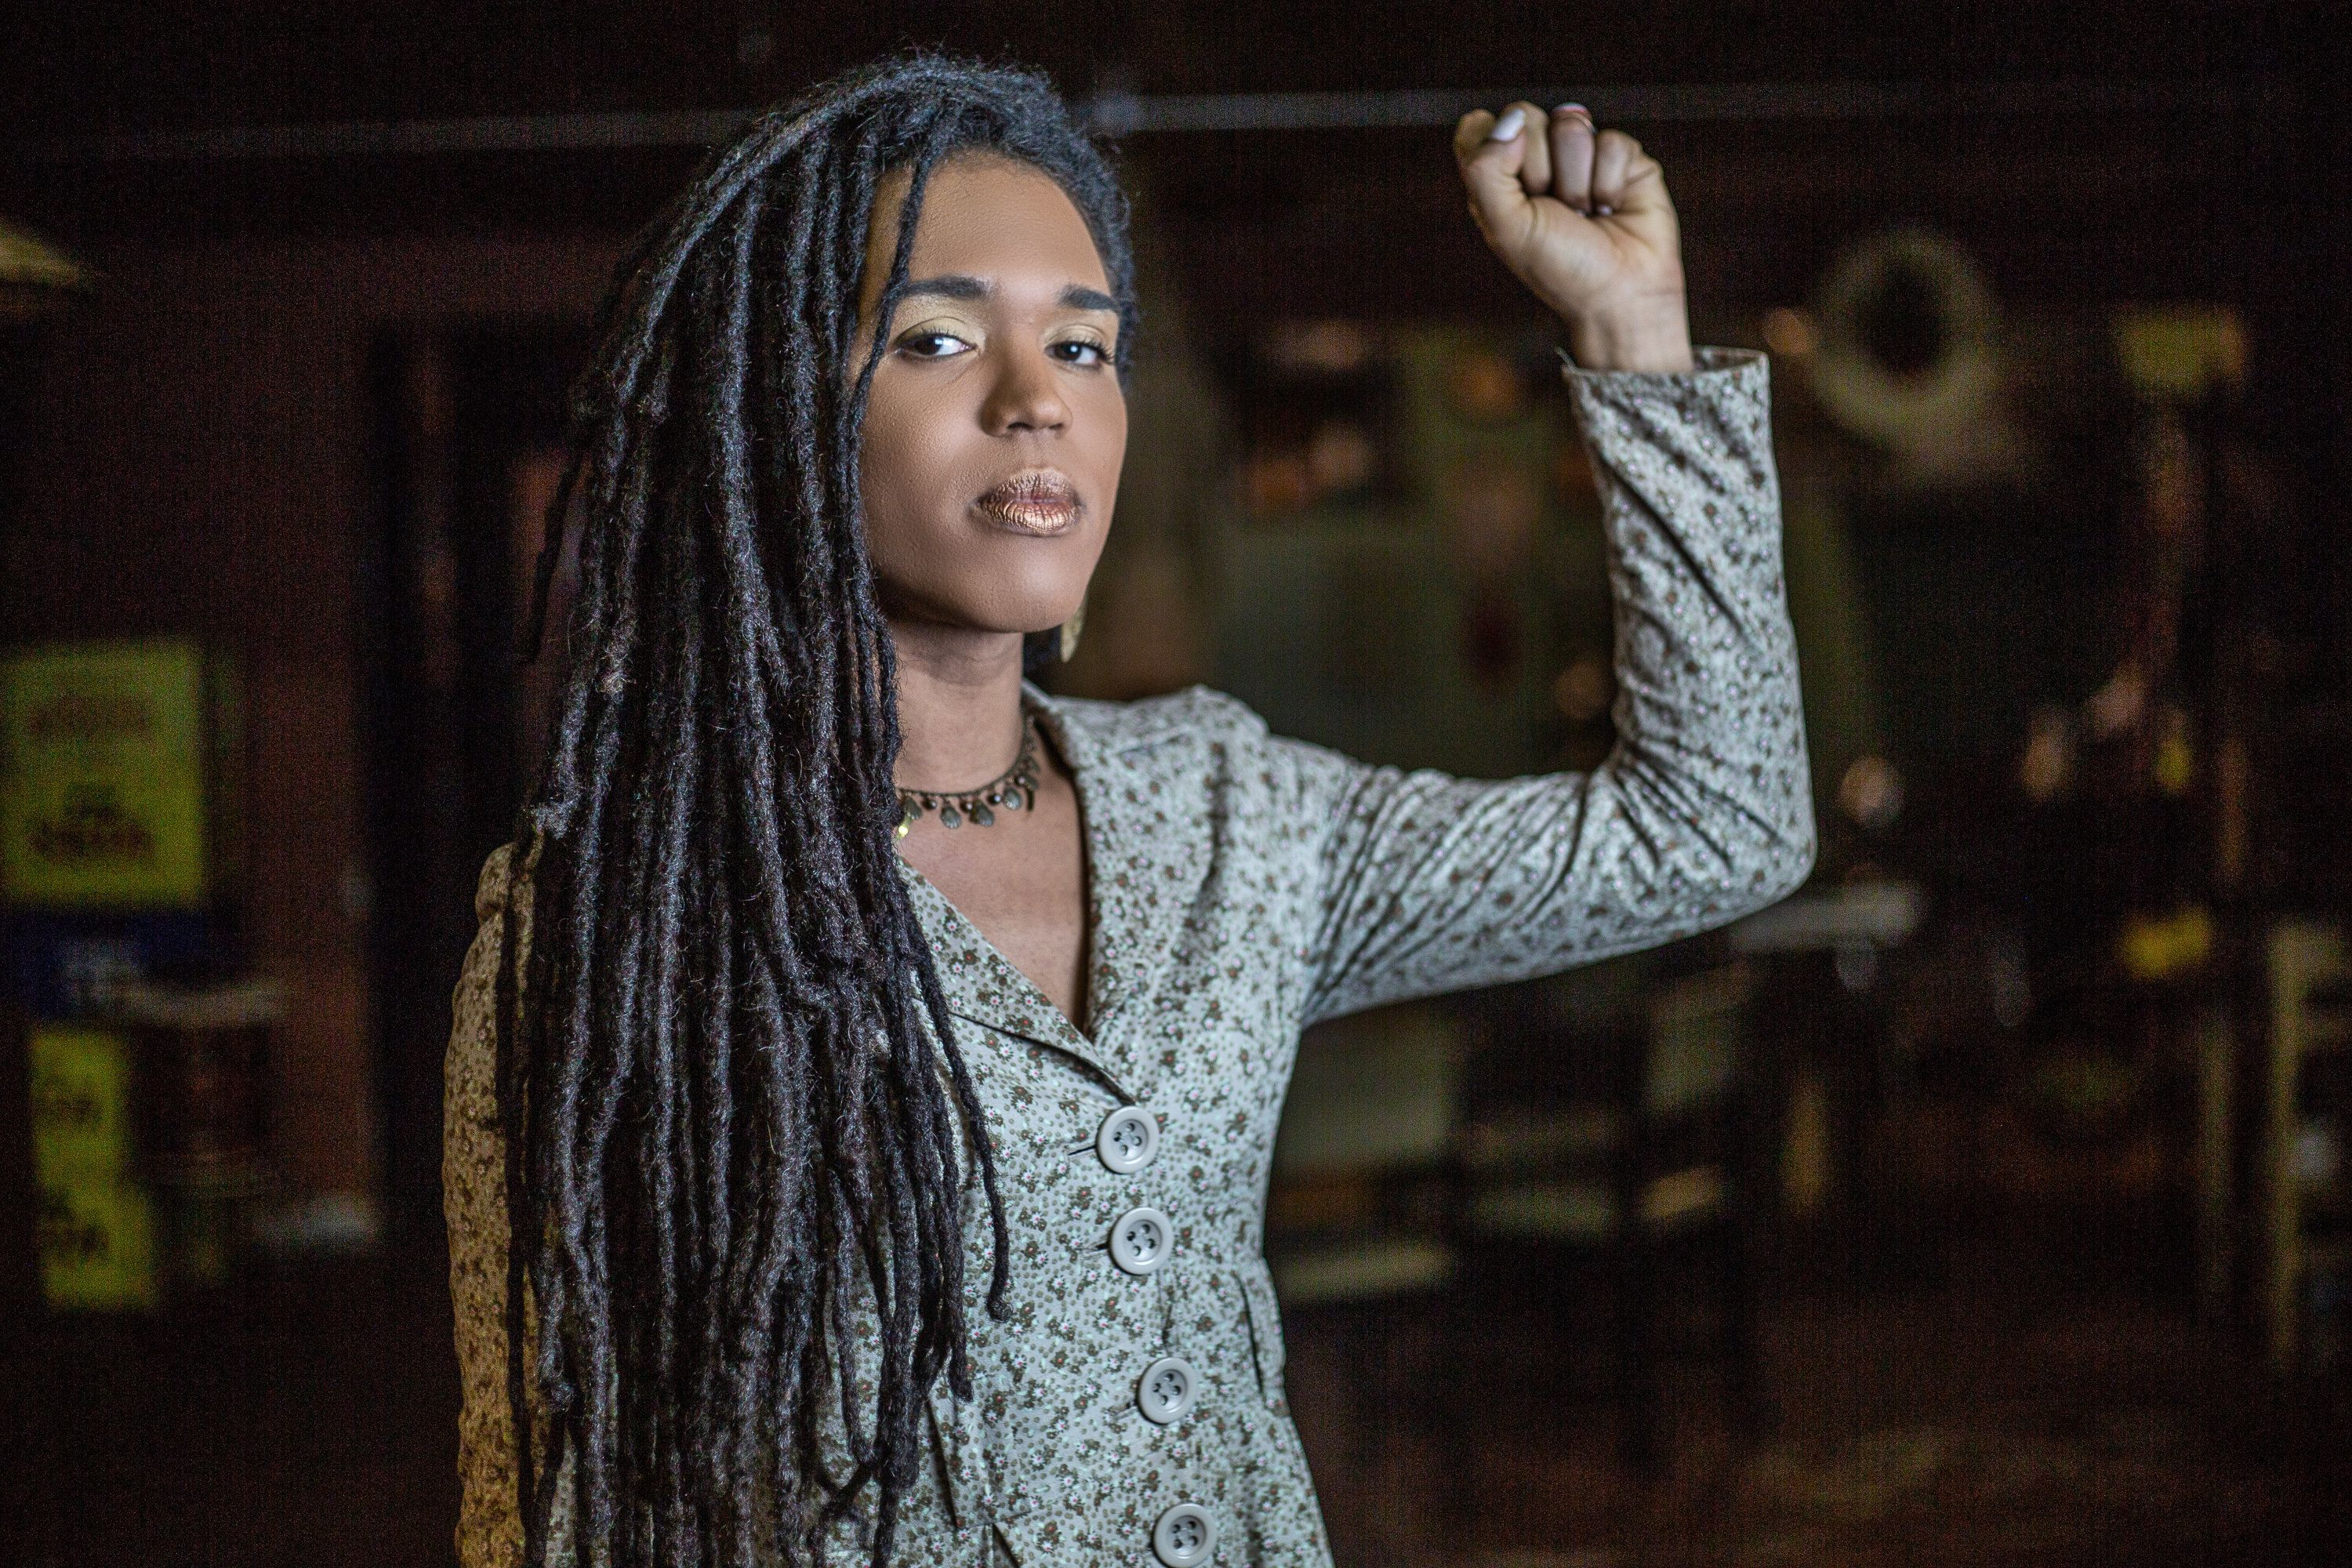 'As Long As They Don't Kill Us, We Will Survive': Brazil's First Black Trans Lawmaker Resists Fear